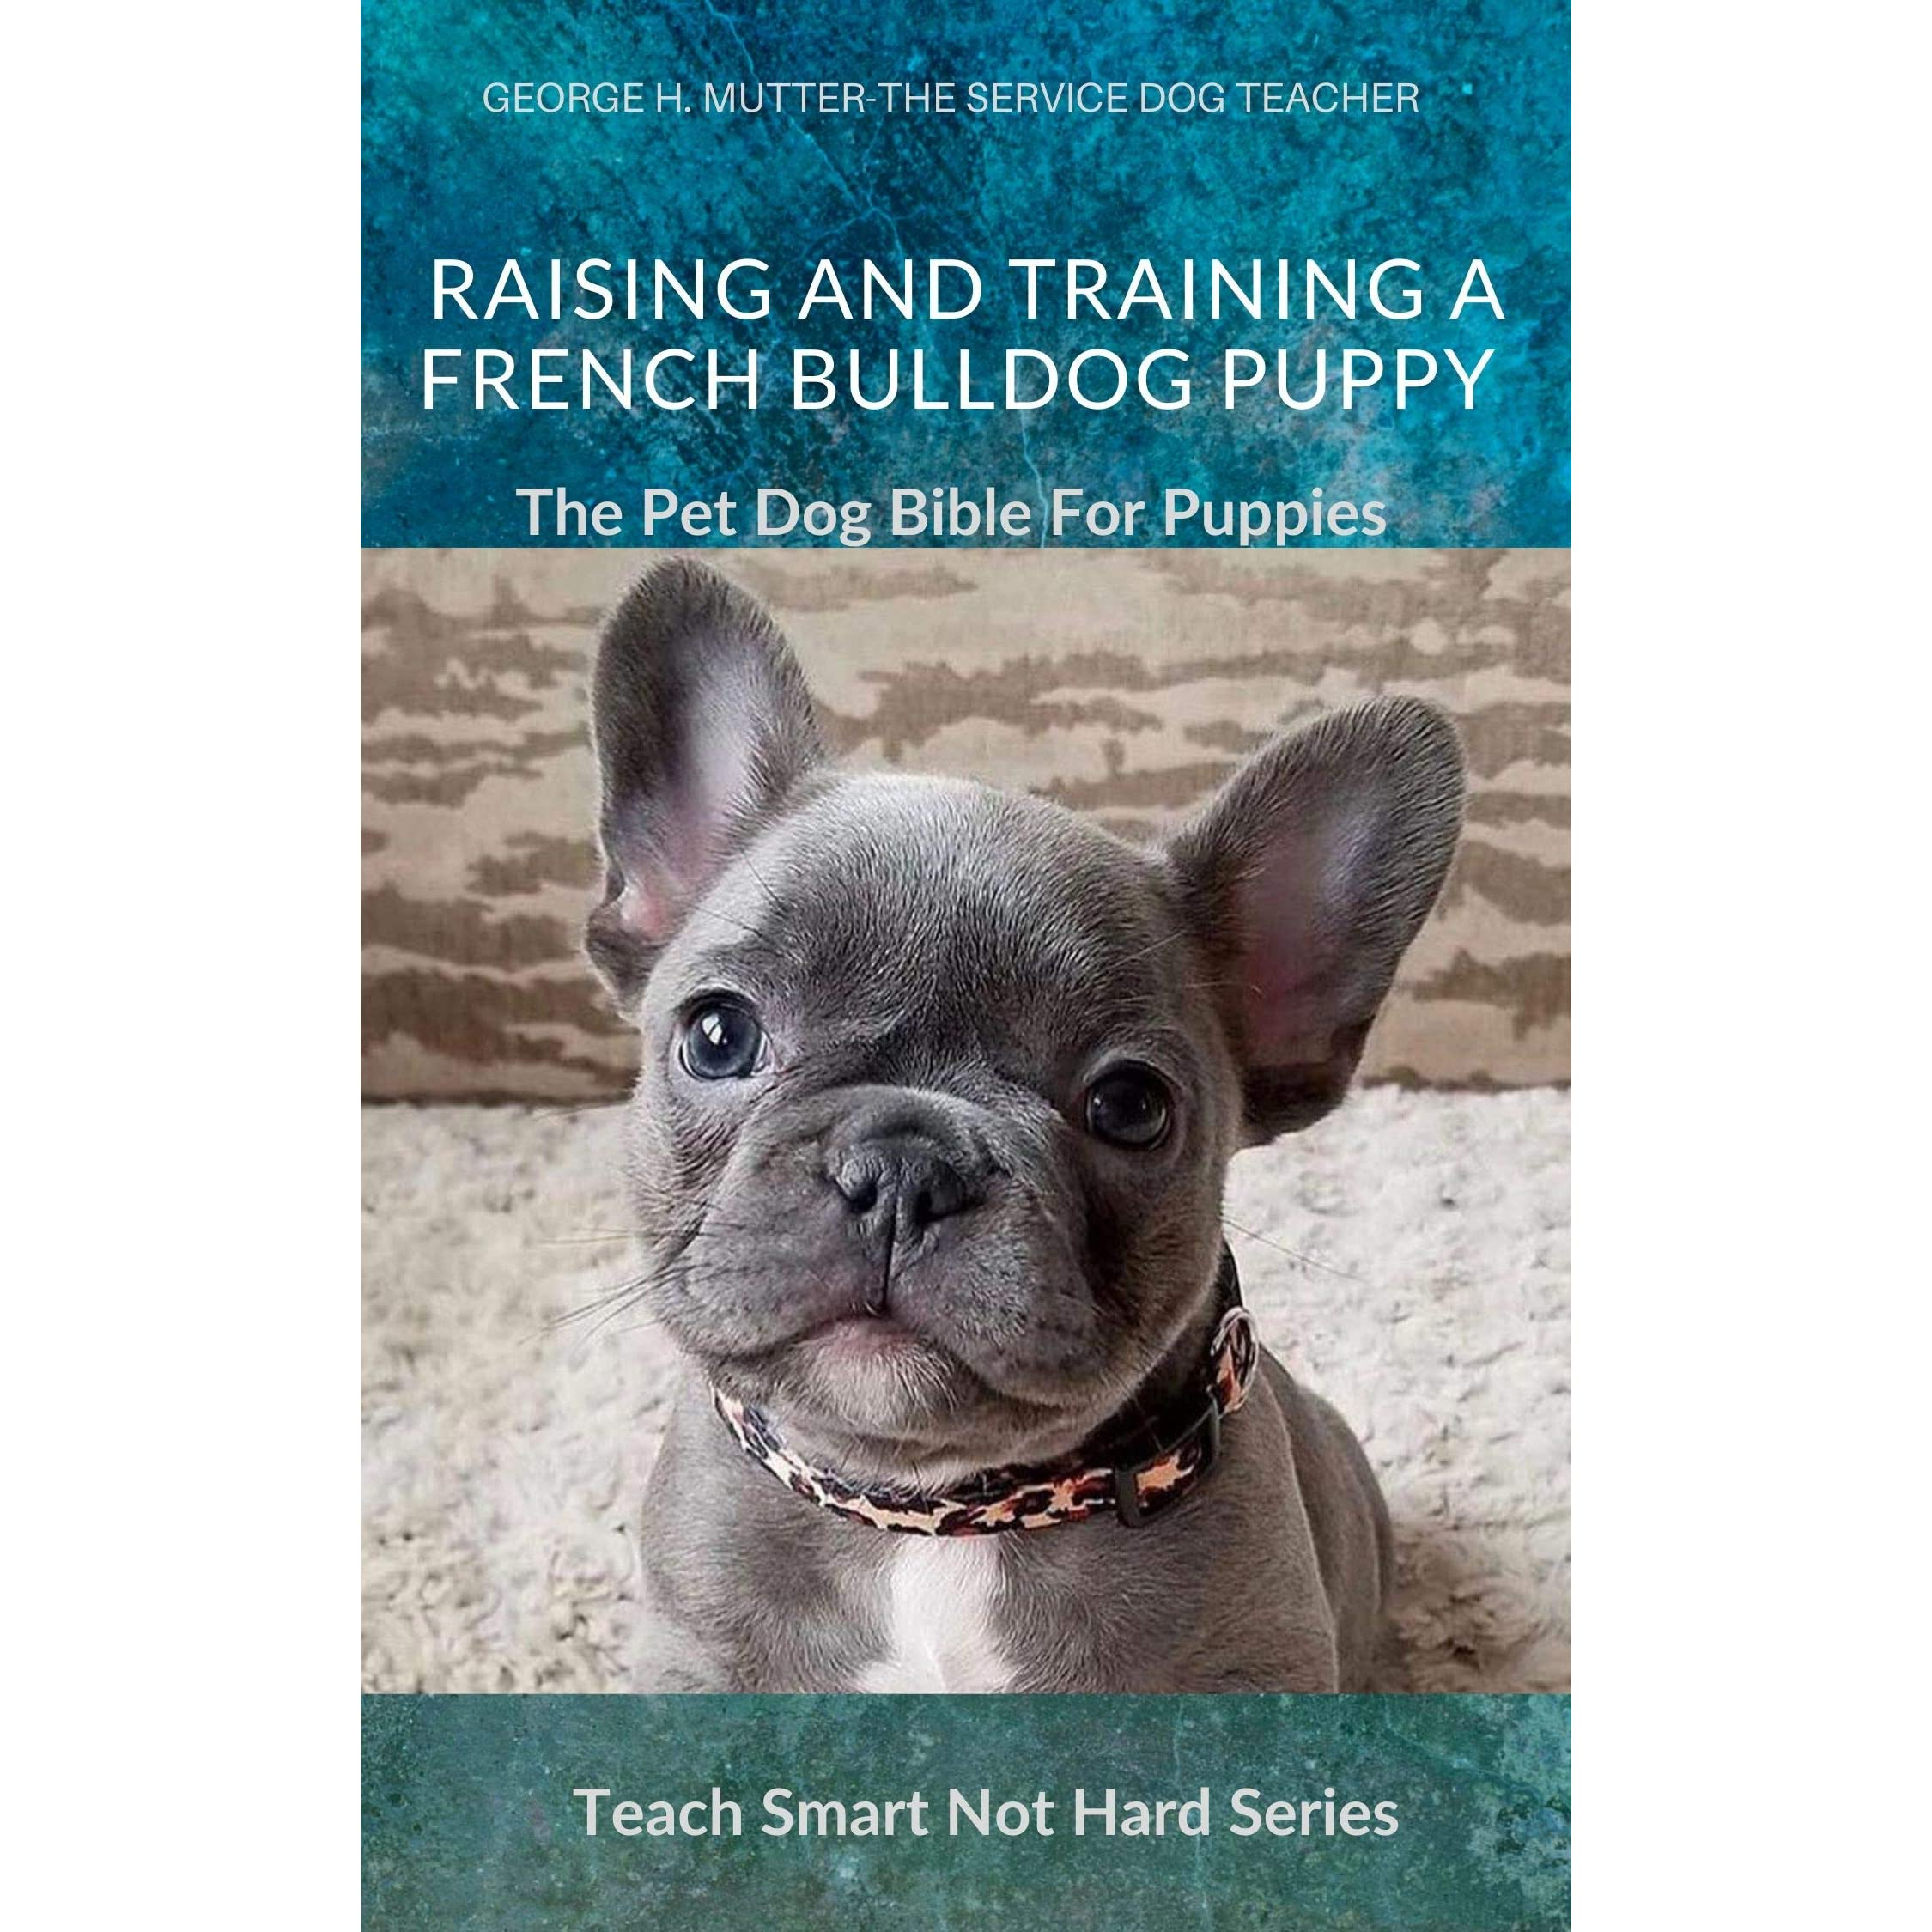 Raising And Training A French Bulldog Puppy The Pet Dog Bible For Puppies By George H Mutter The Service Dog Teacher